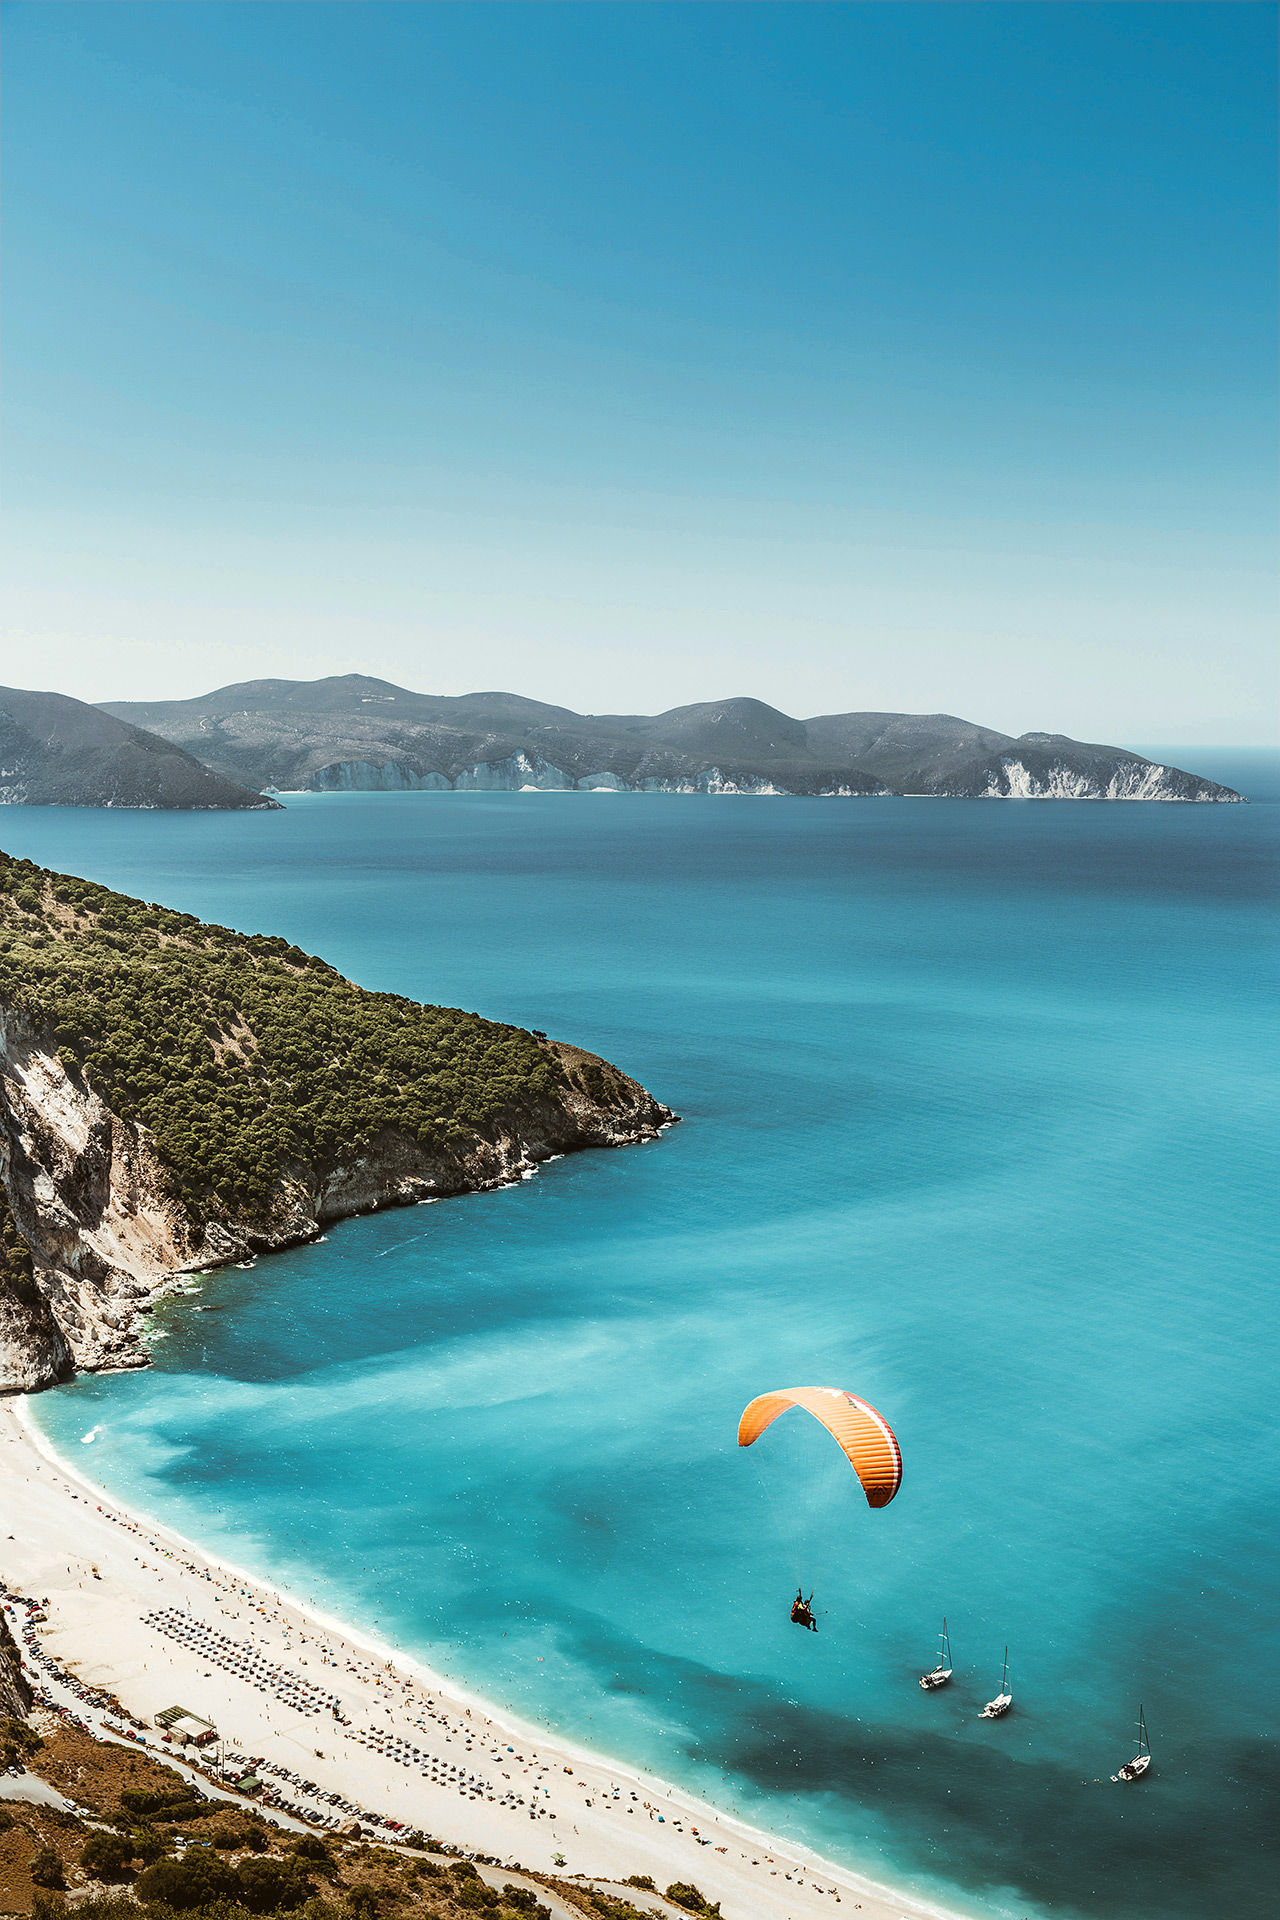 Paragliding flight over Myrtos beach, Kefalonia